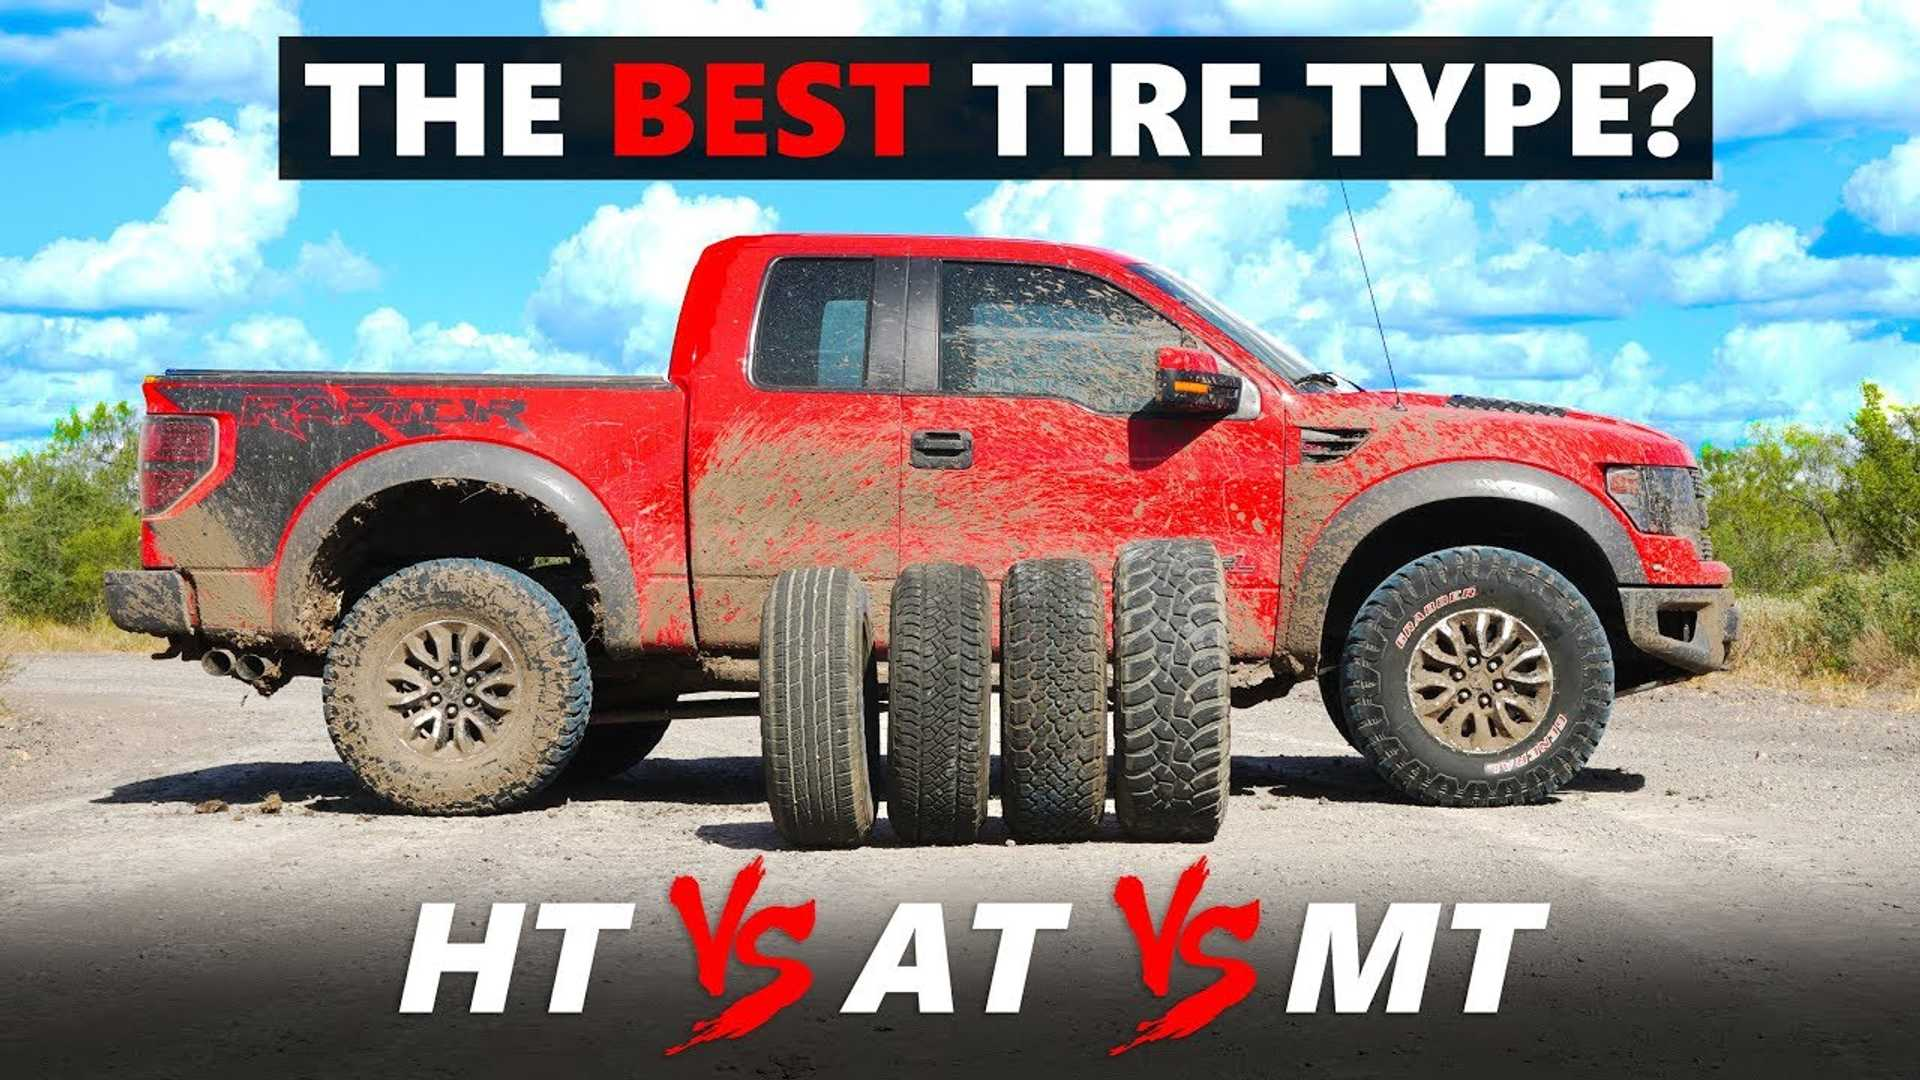 Best Off Road Tires >> Off Road Tire Test Shows Downside Of M Ts On Street Driven Trucks